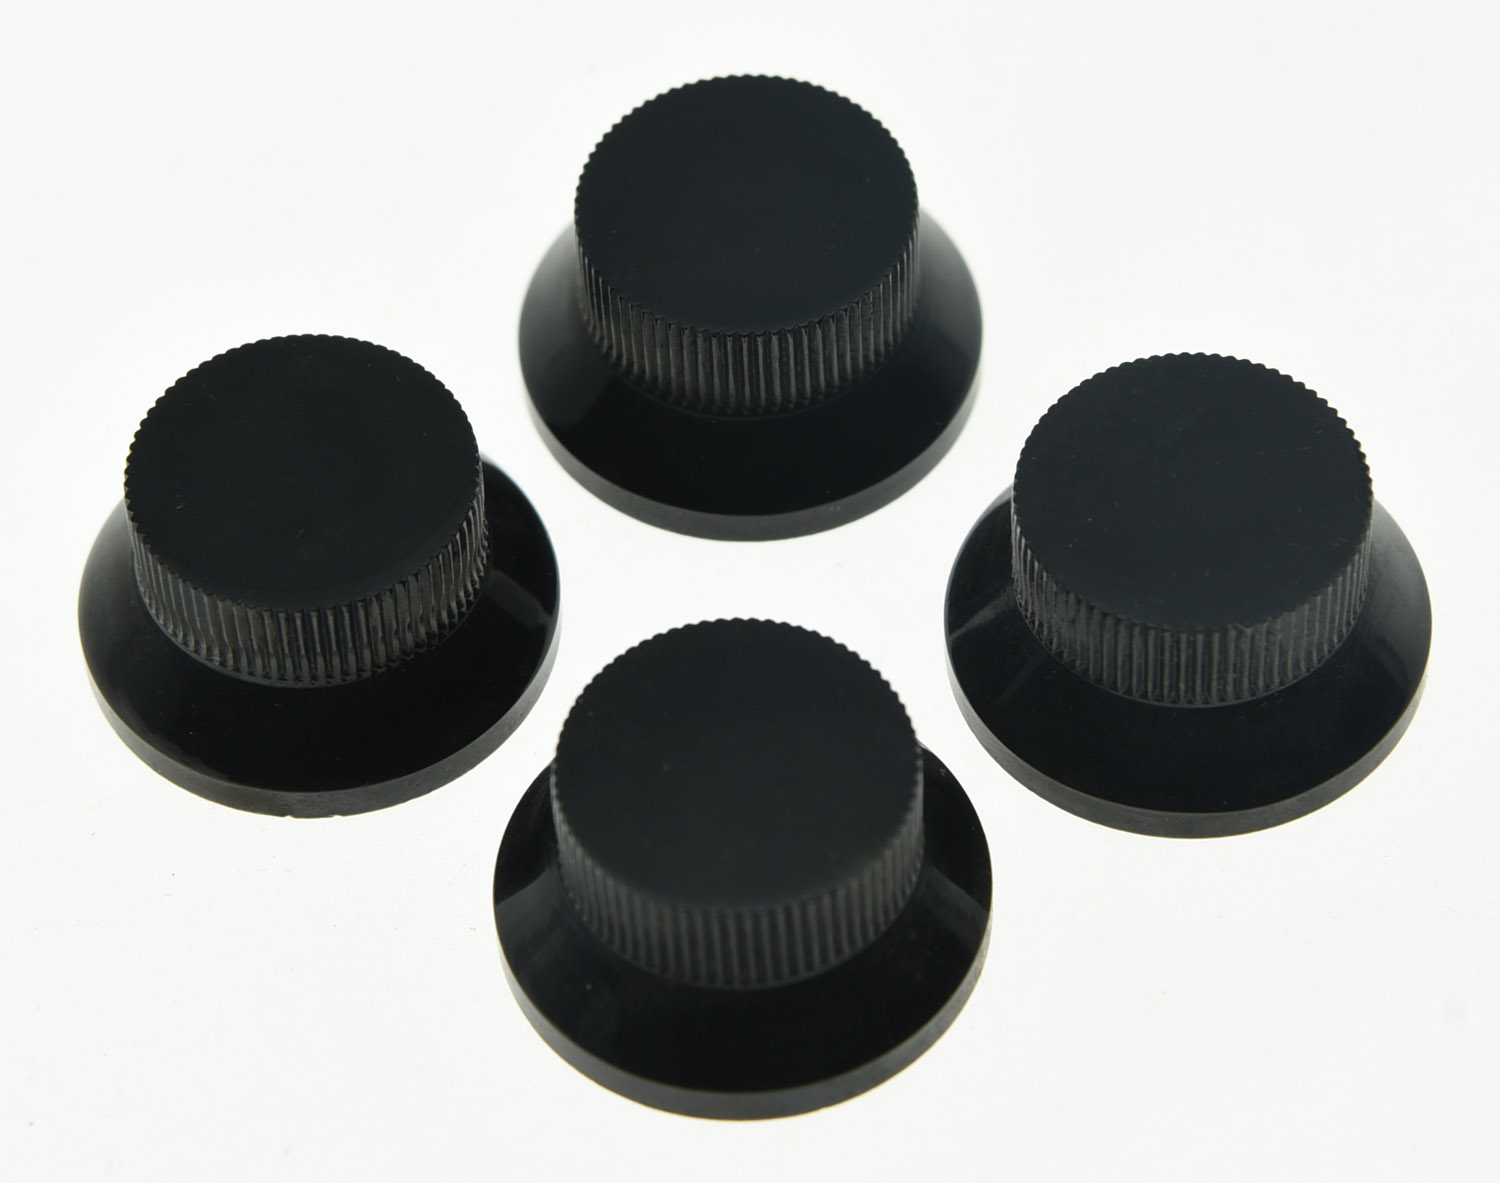 KAISH 4pcs Black Metal LP Top Hat Bell Knobs Guitar Bass Knob for Metric 5.8mm Pots wireless buzzer bell system new arrival restaurant service pager full beautiful equipment 1 display 16 call button